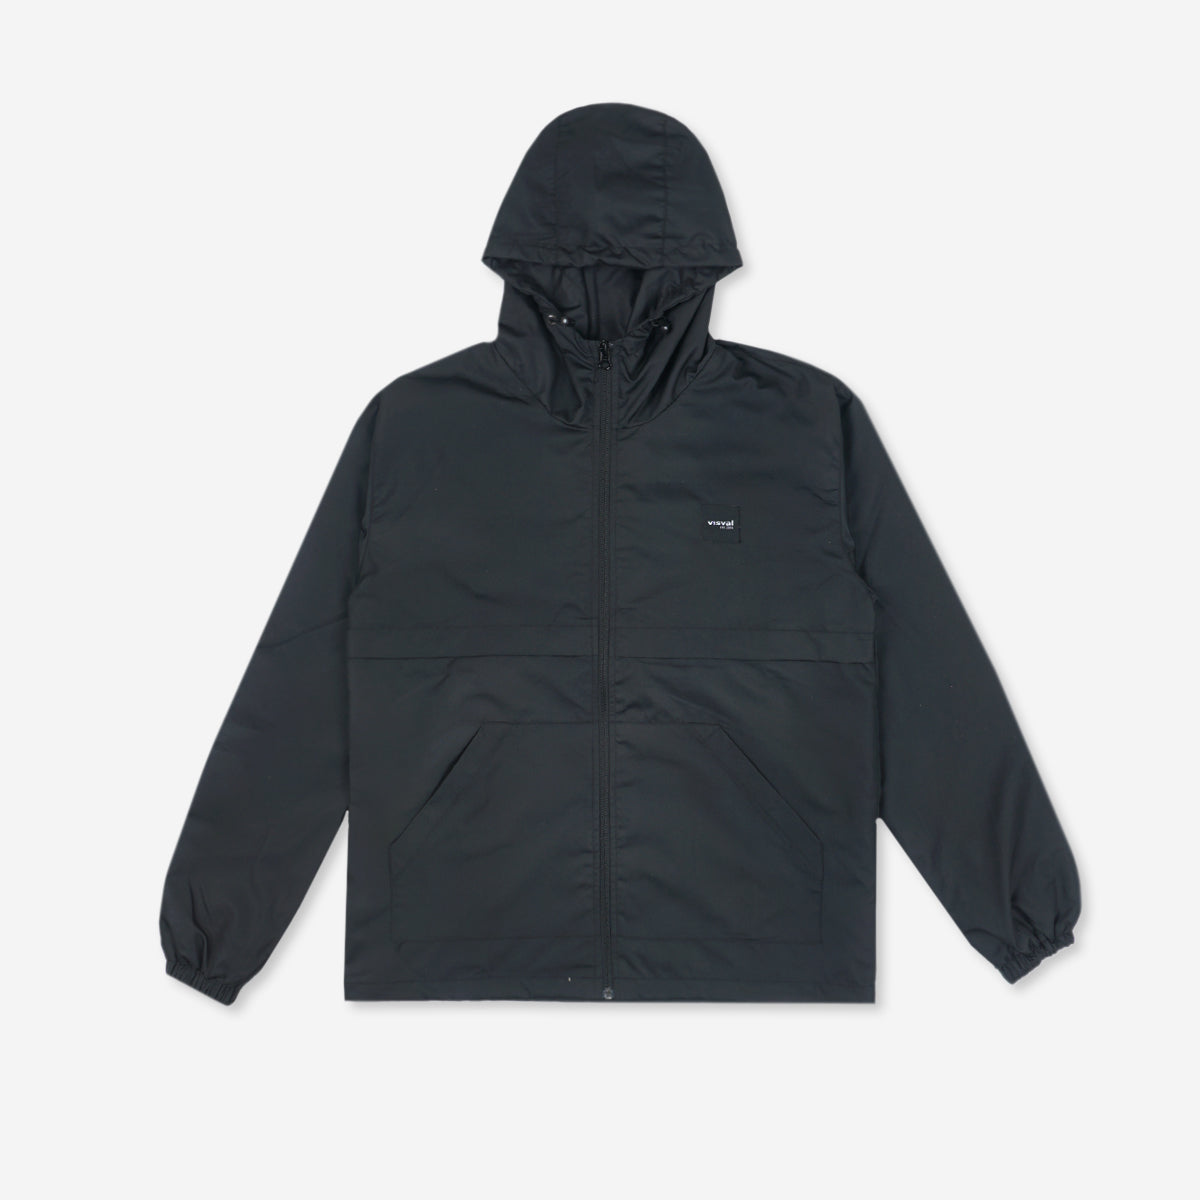 Narco Windbreaker Jacket Black